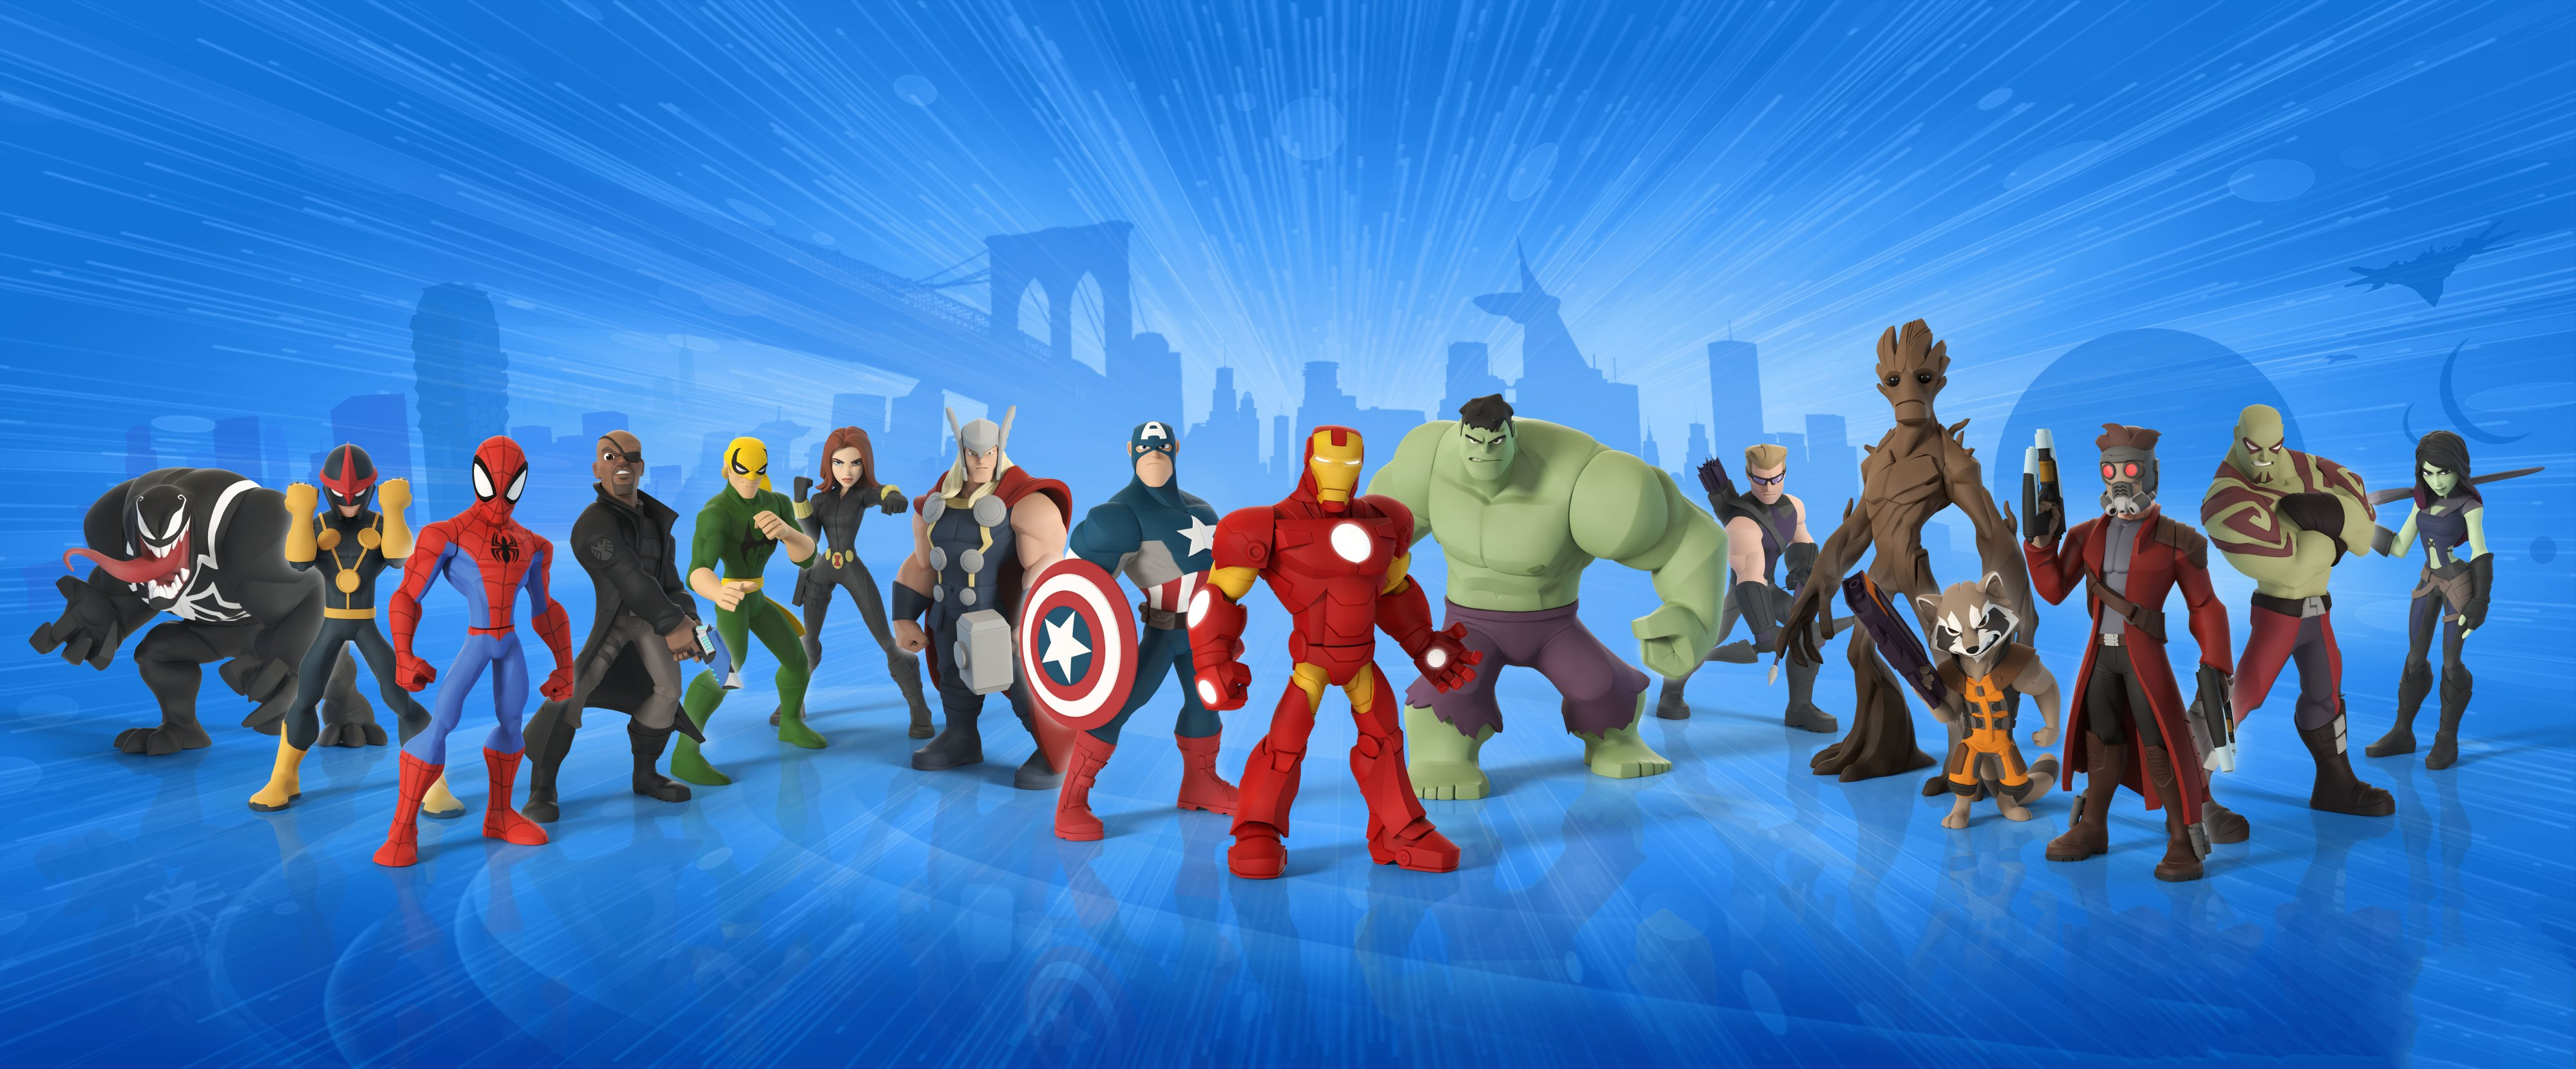 guardians of the galaxy in marvel disney infinity game nj.jpg